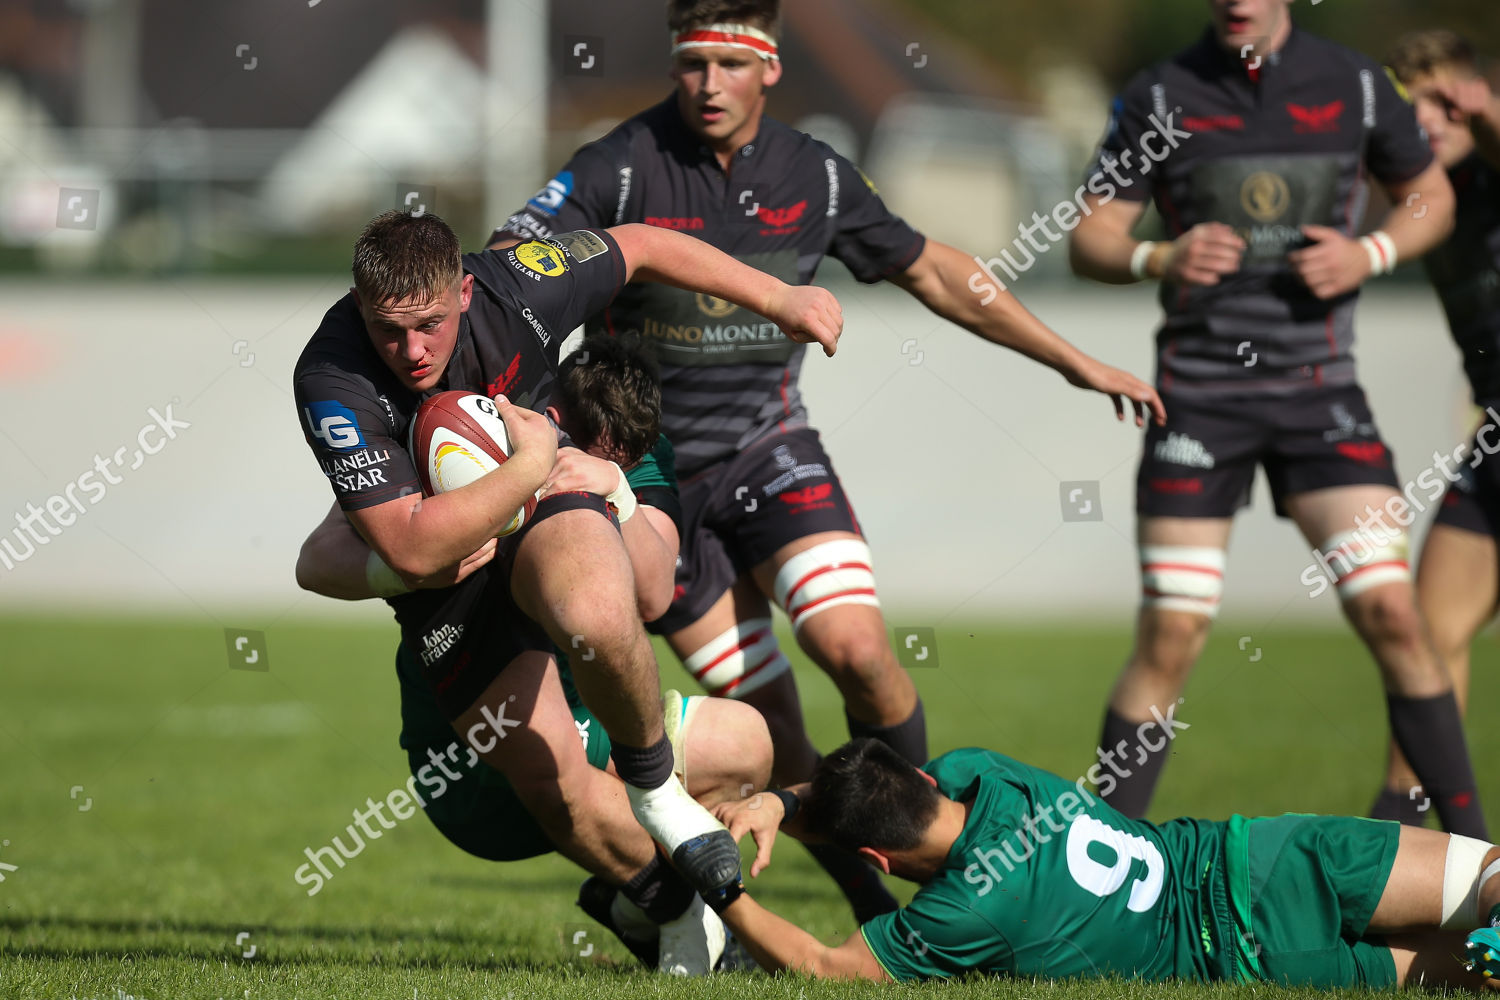 Dafydd Hughes Scarlets tackled he charges towards Editorial